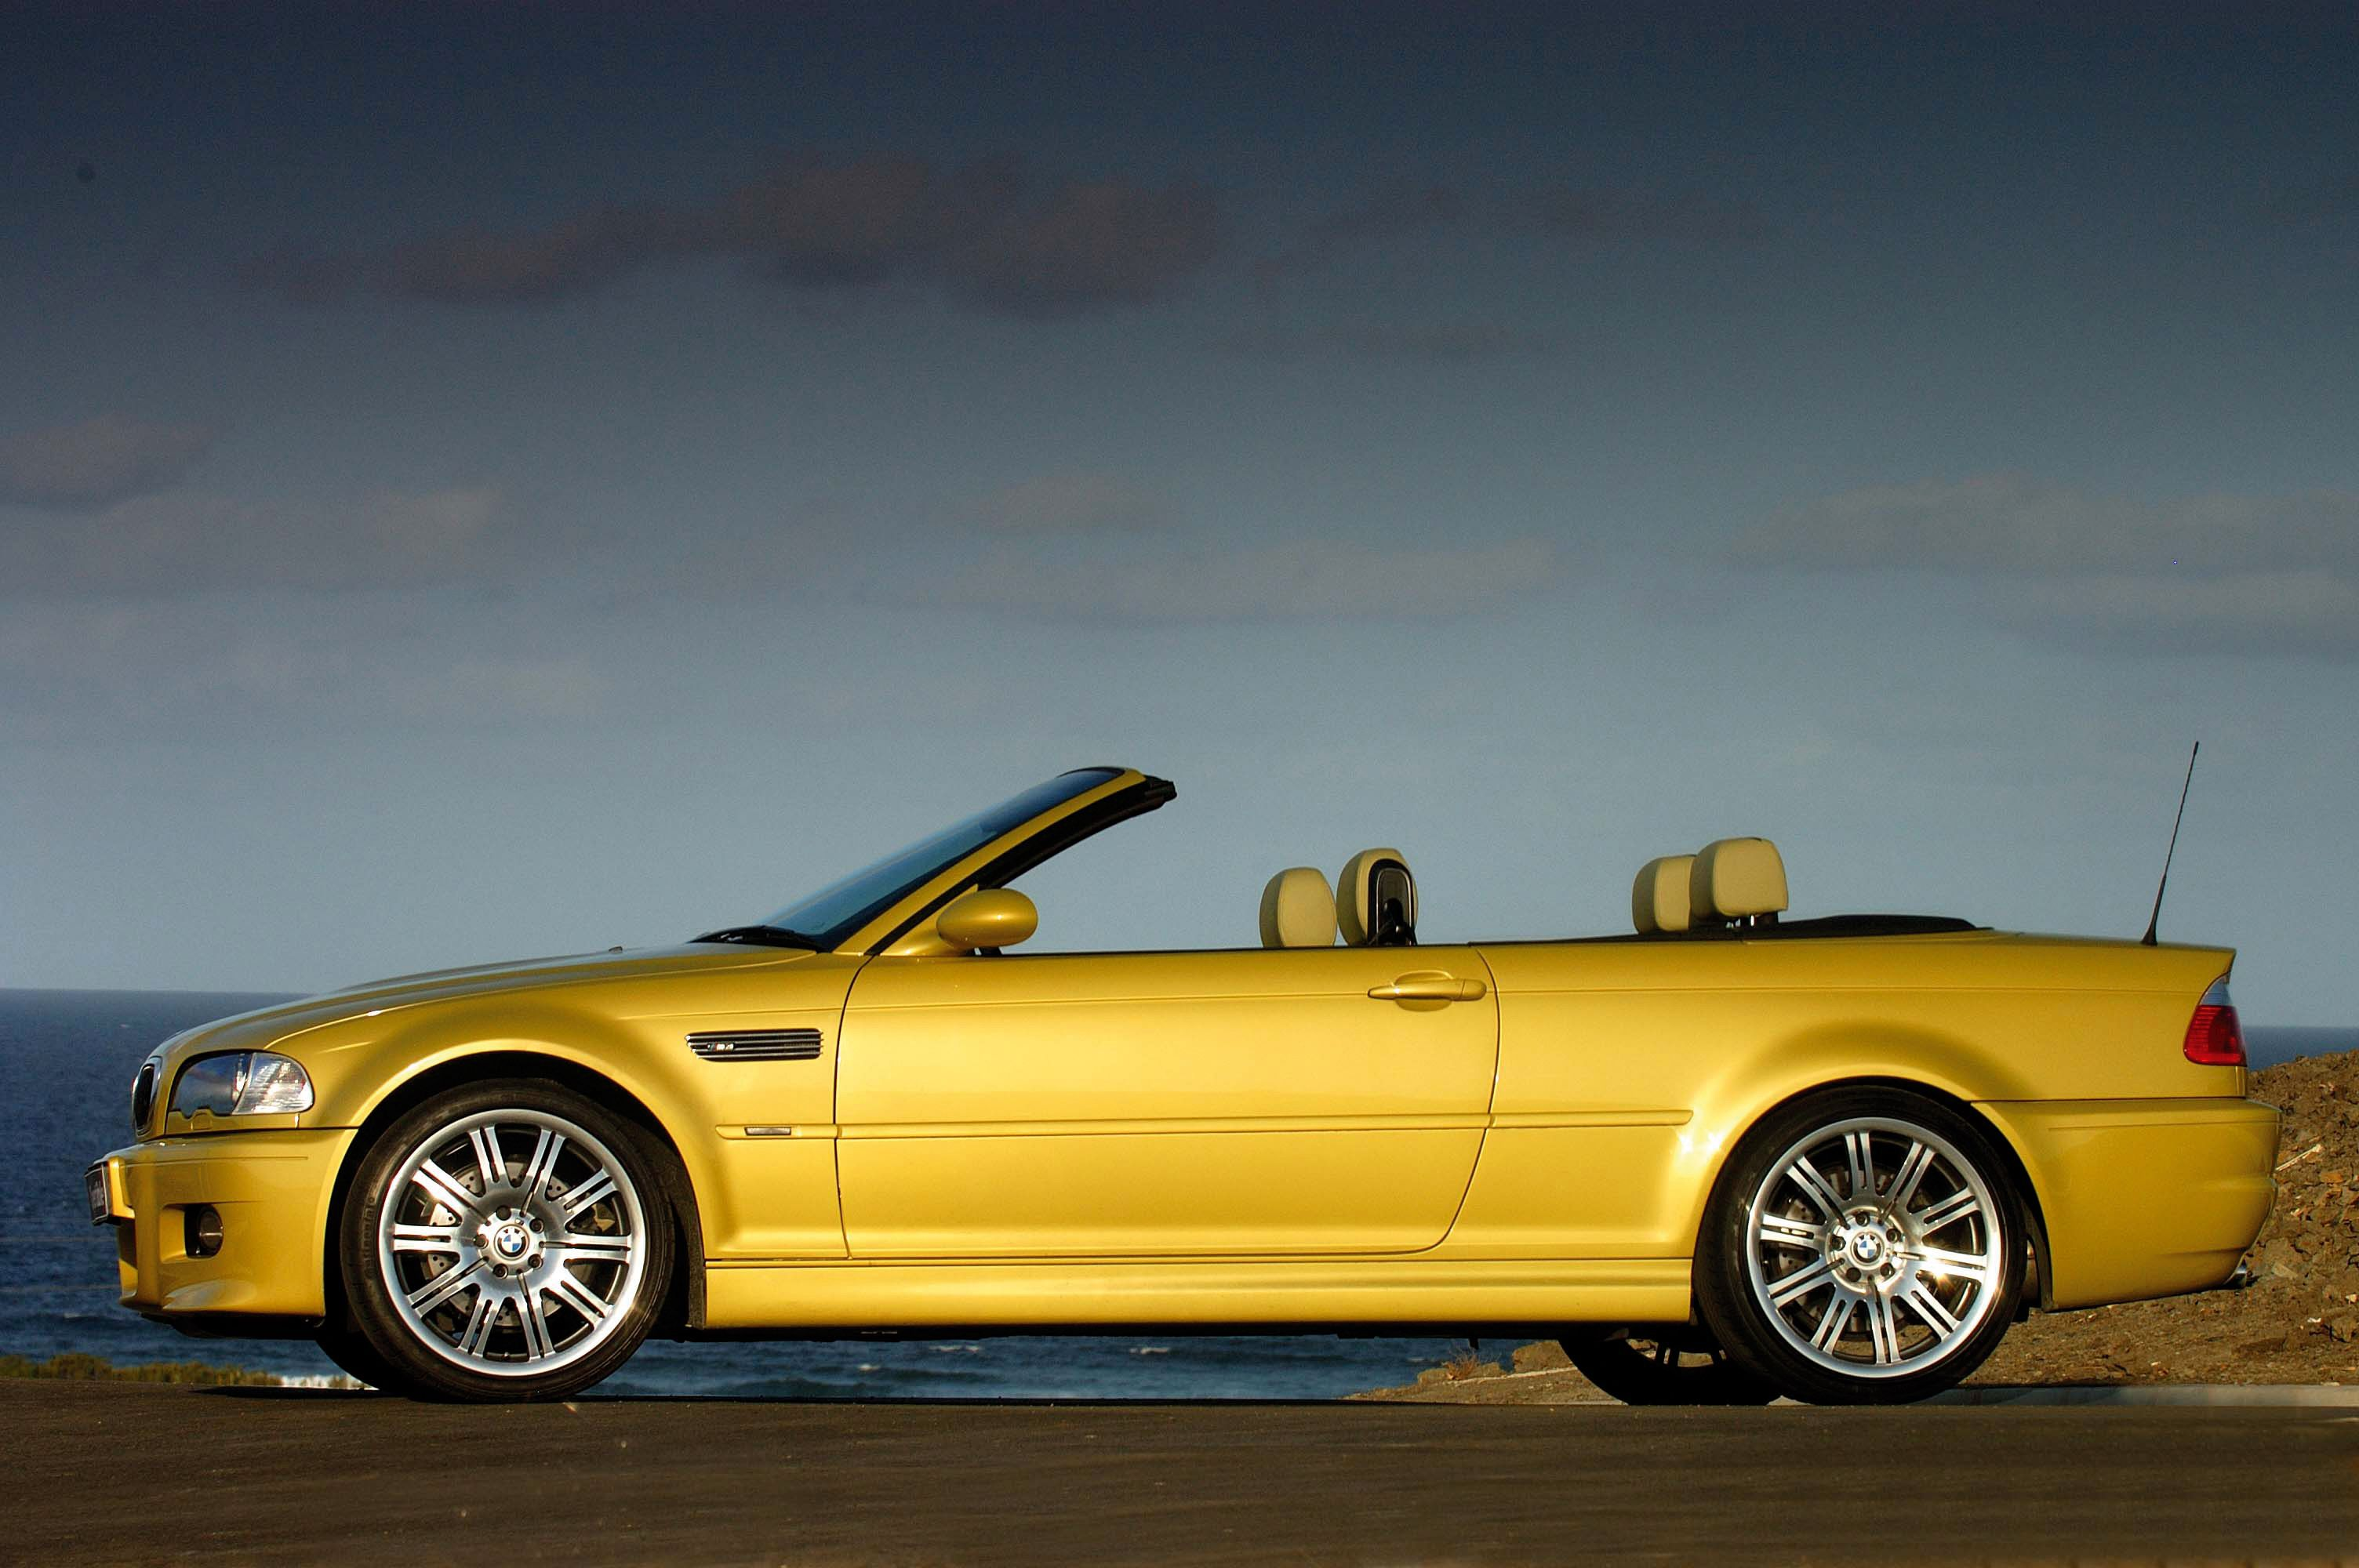 How To Make An Interesting Art Piece Using Tree Branches Ehow Bmw Bmw E46 Bmw Convertible